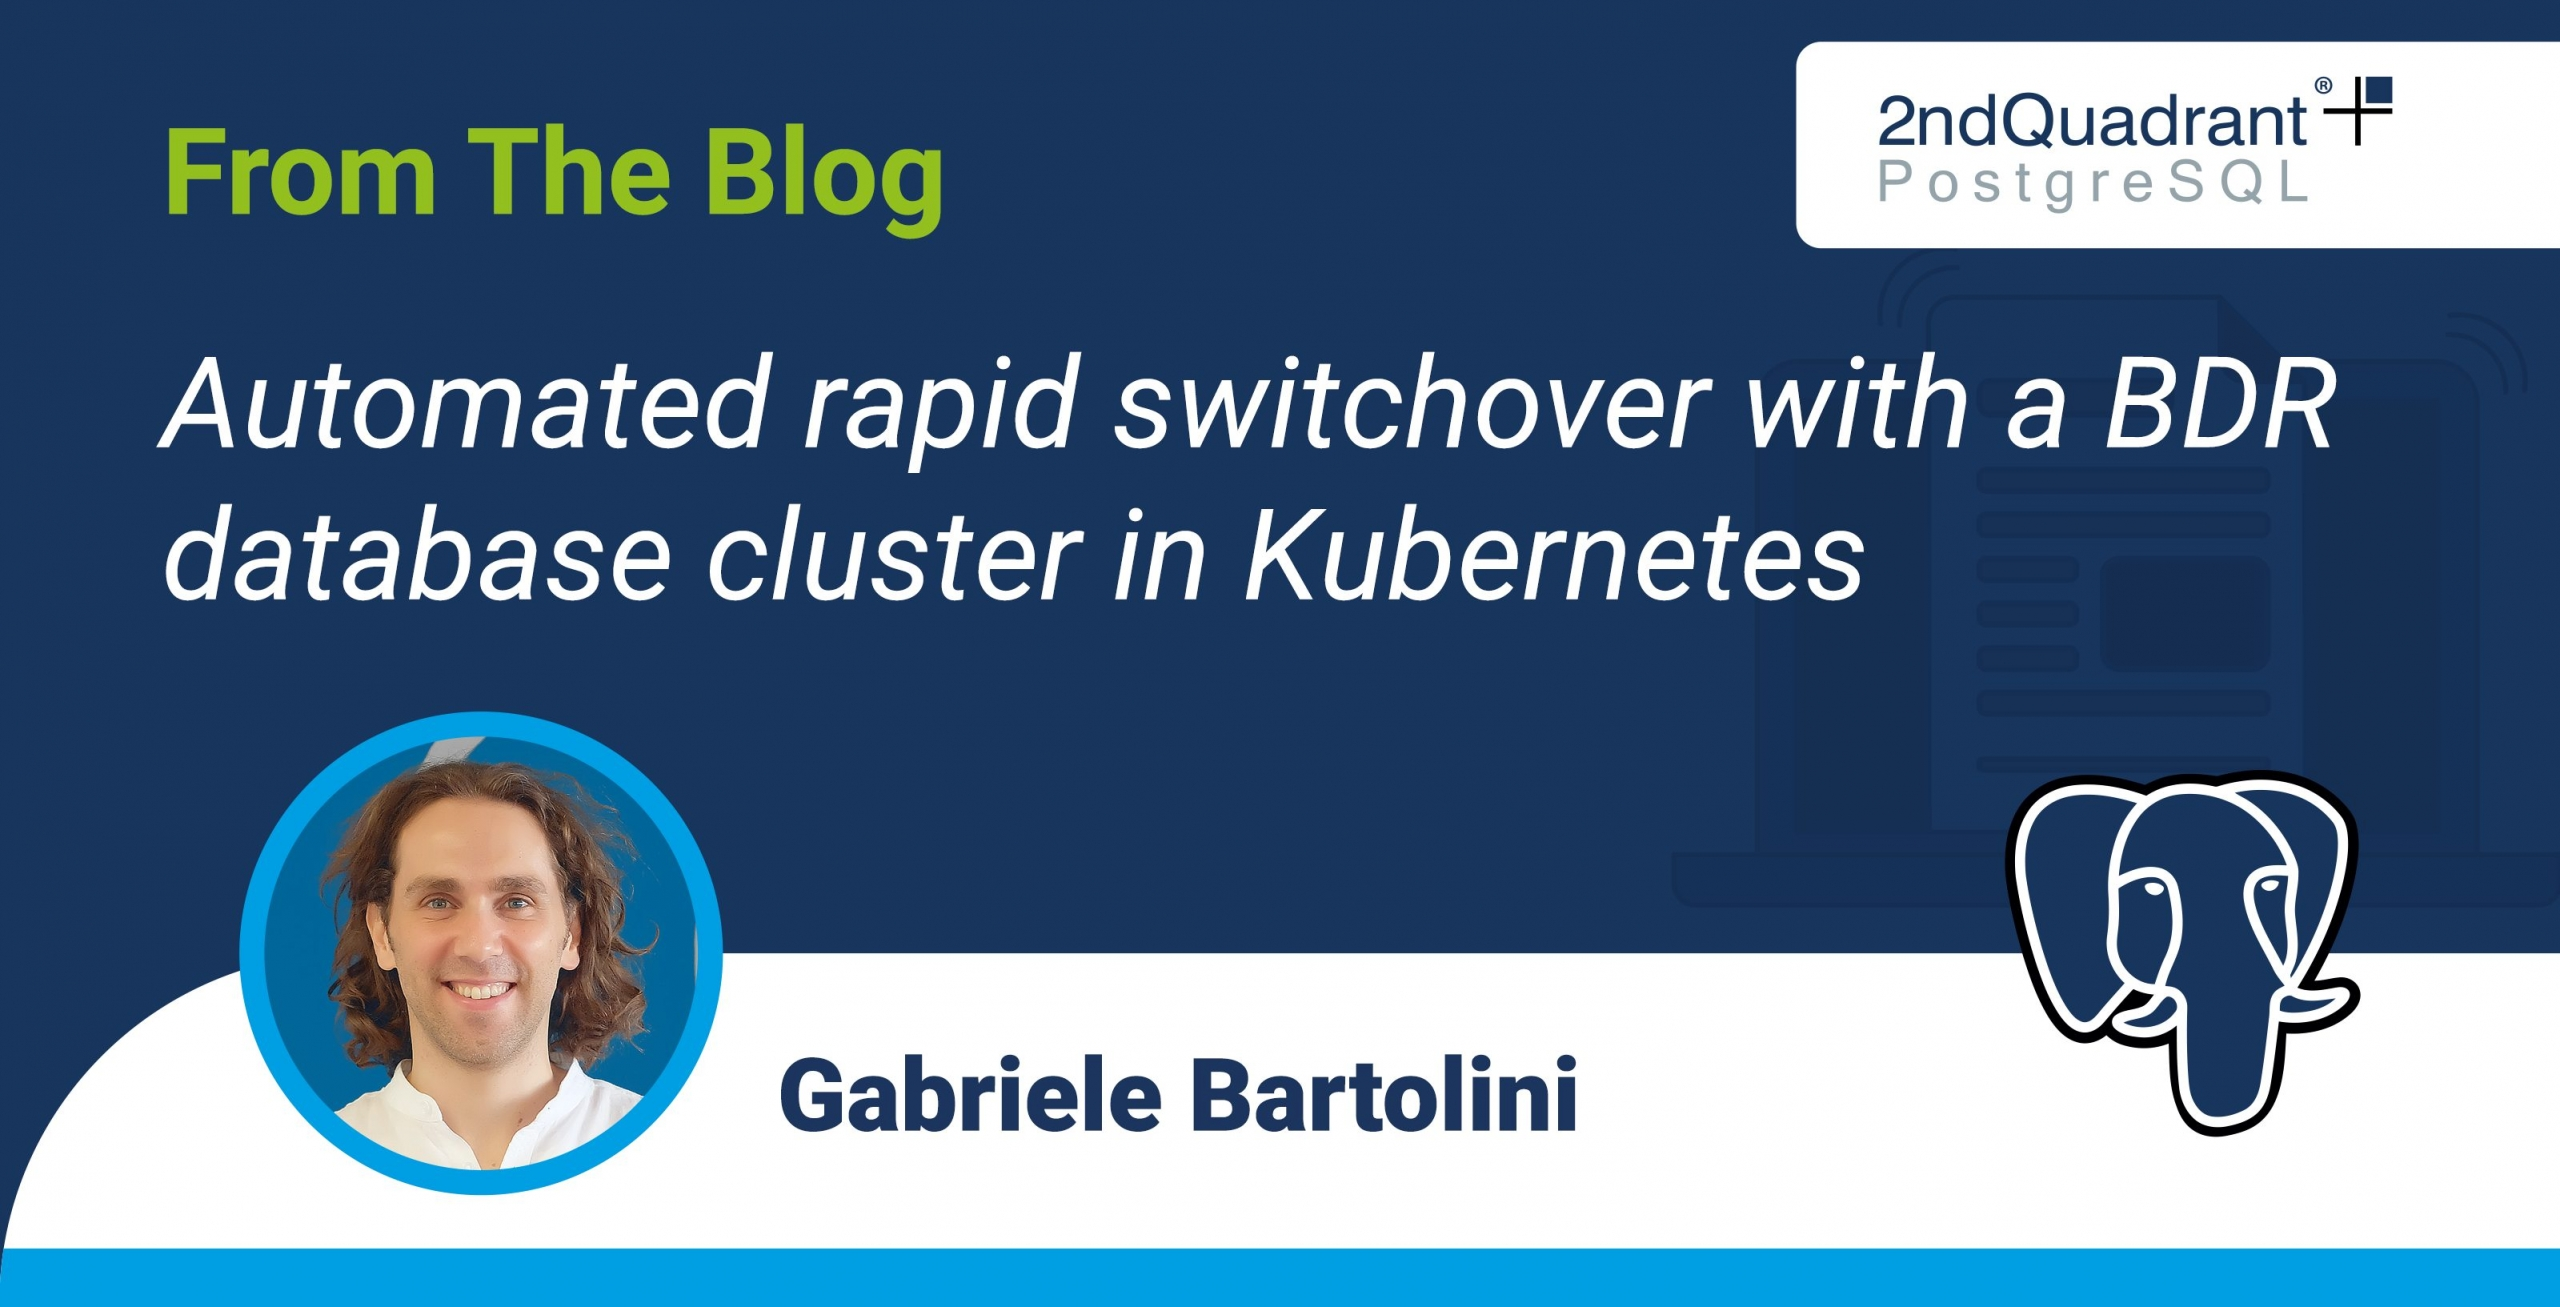 Automated rapid switchover with a BDR database cluster in Kubernetes